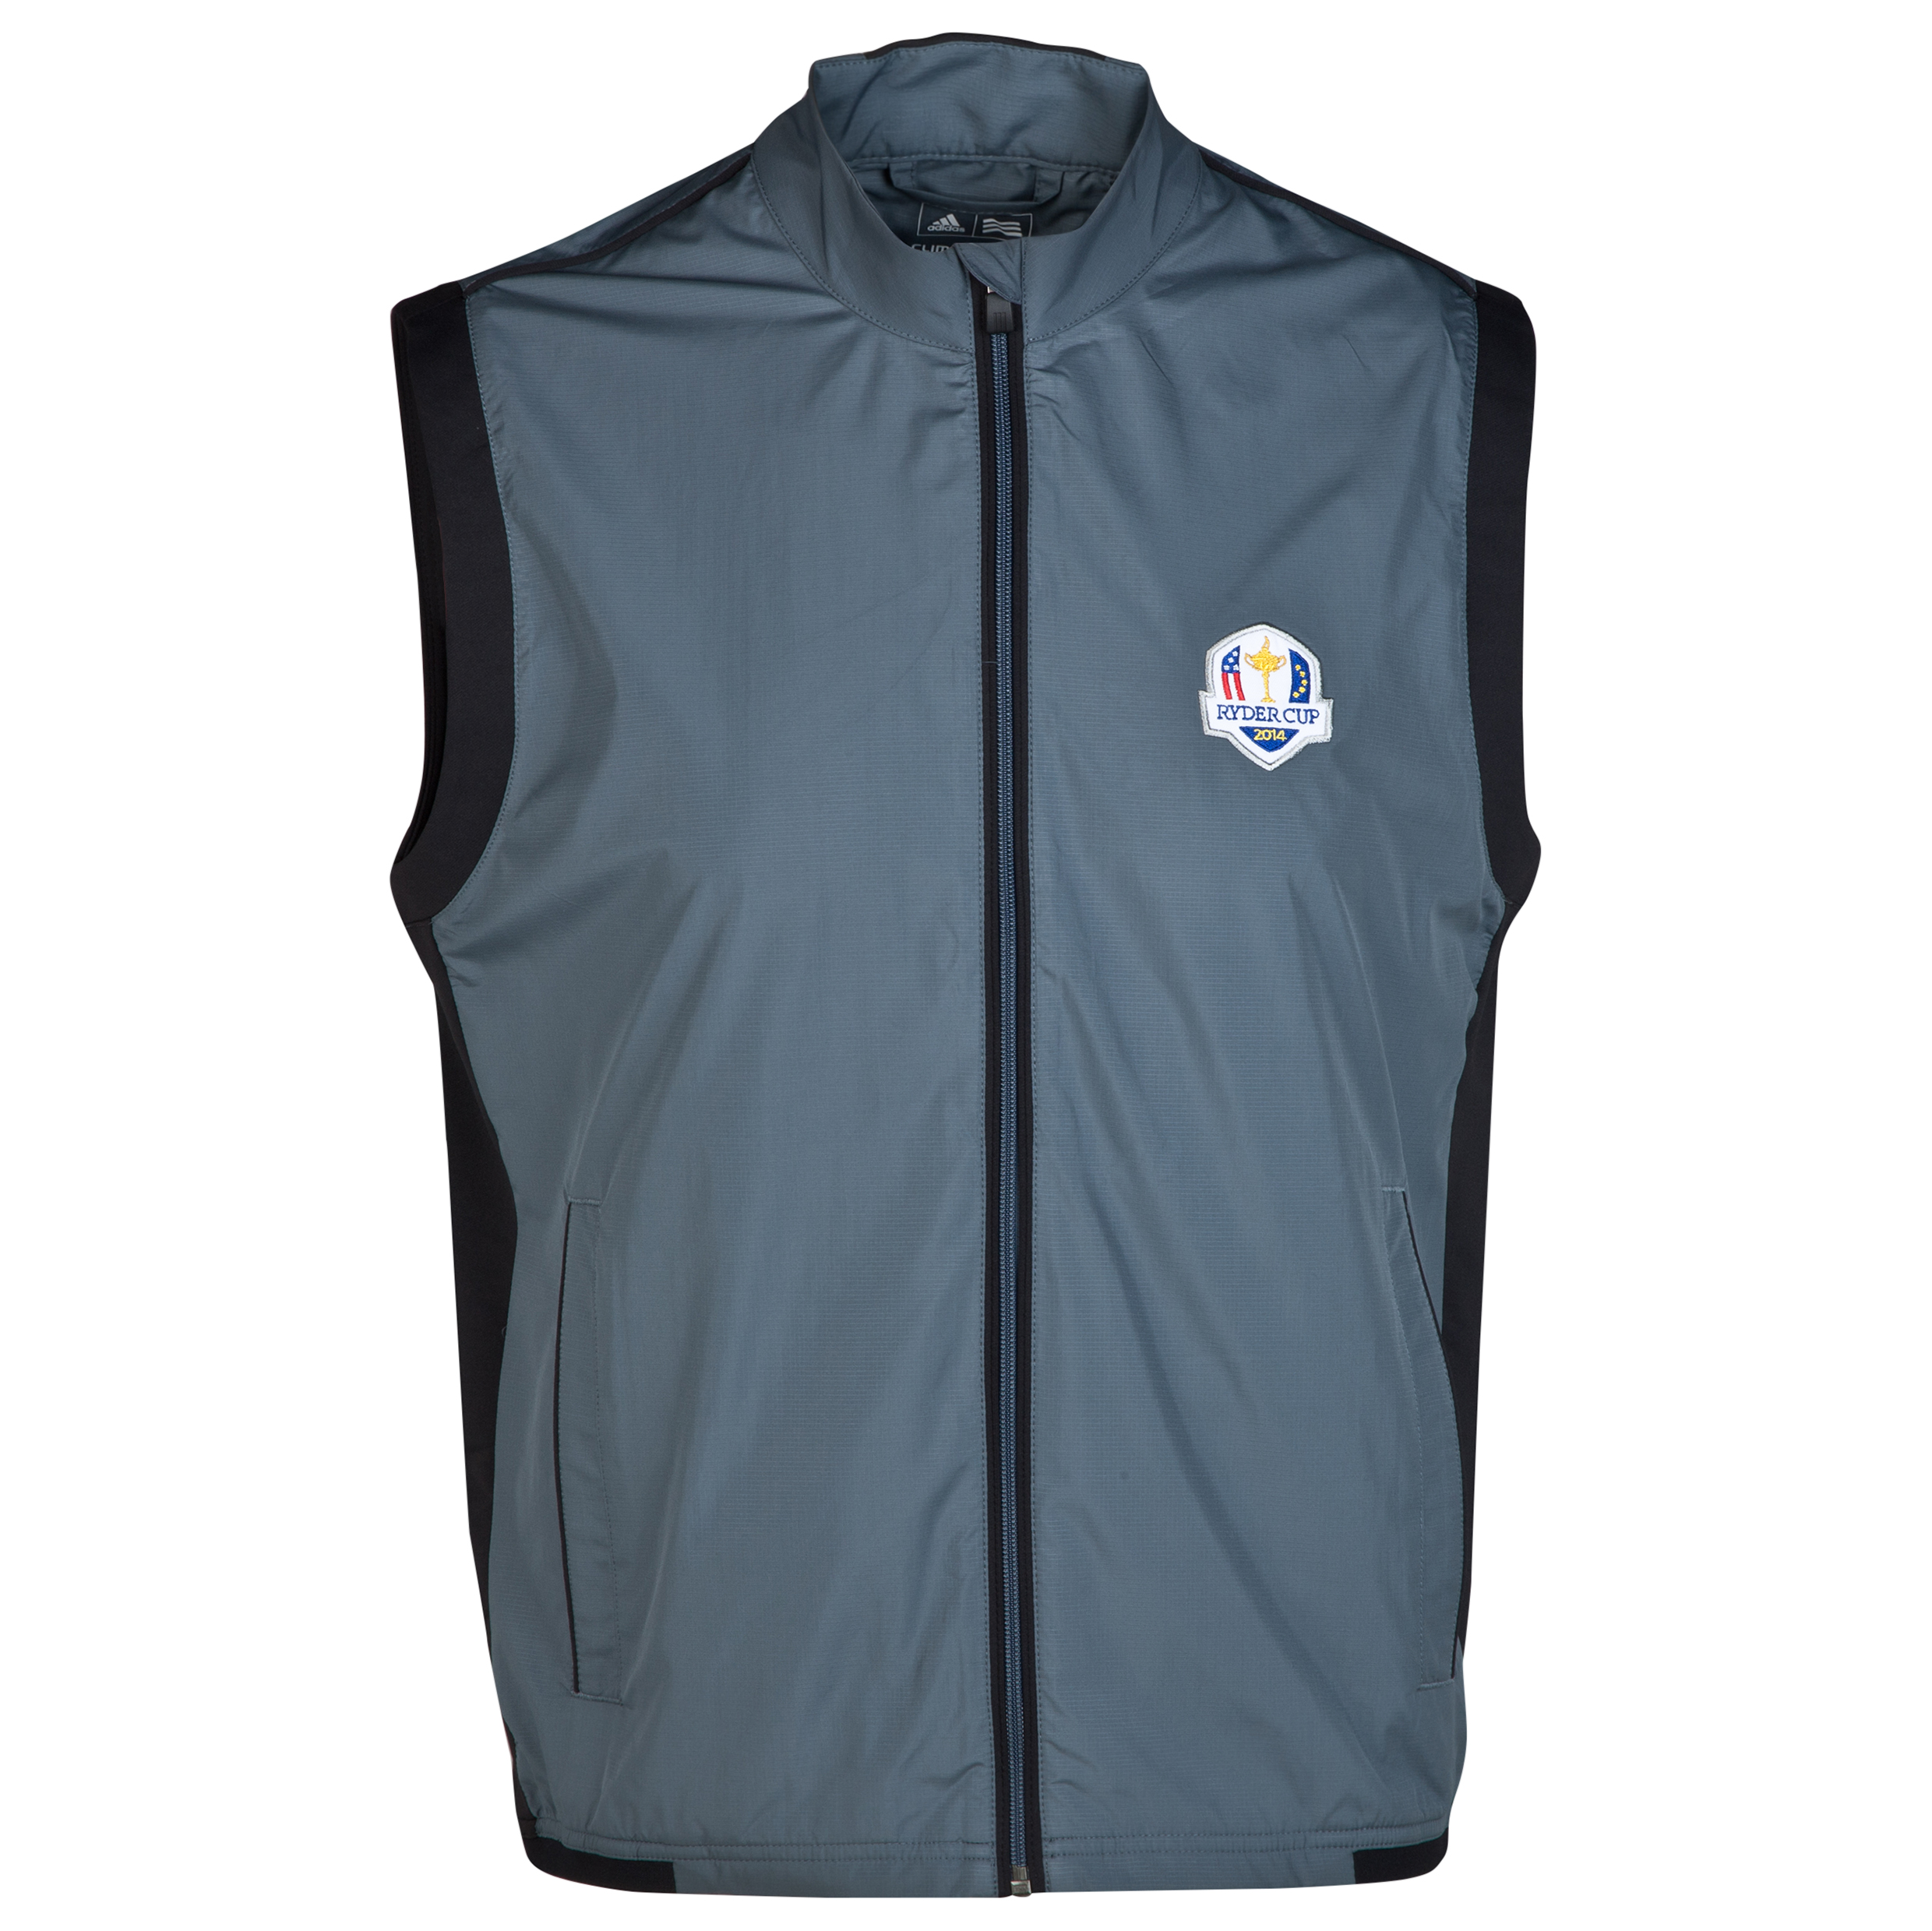 The 2014 Ryder Cup adidas ClimaProof Stretch Wind Vest Dk Grey